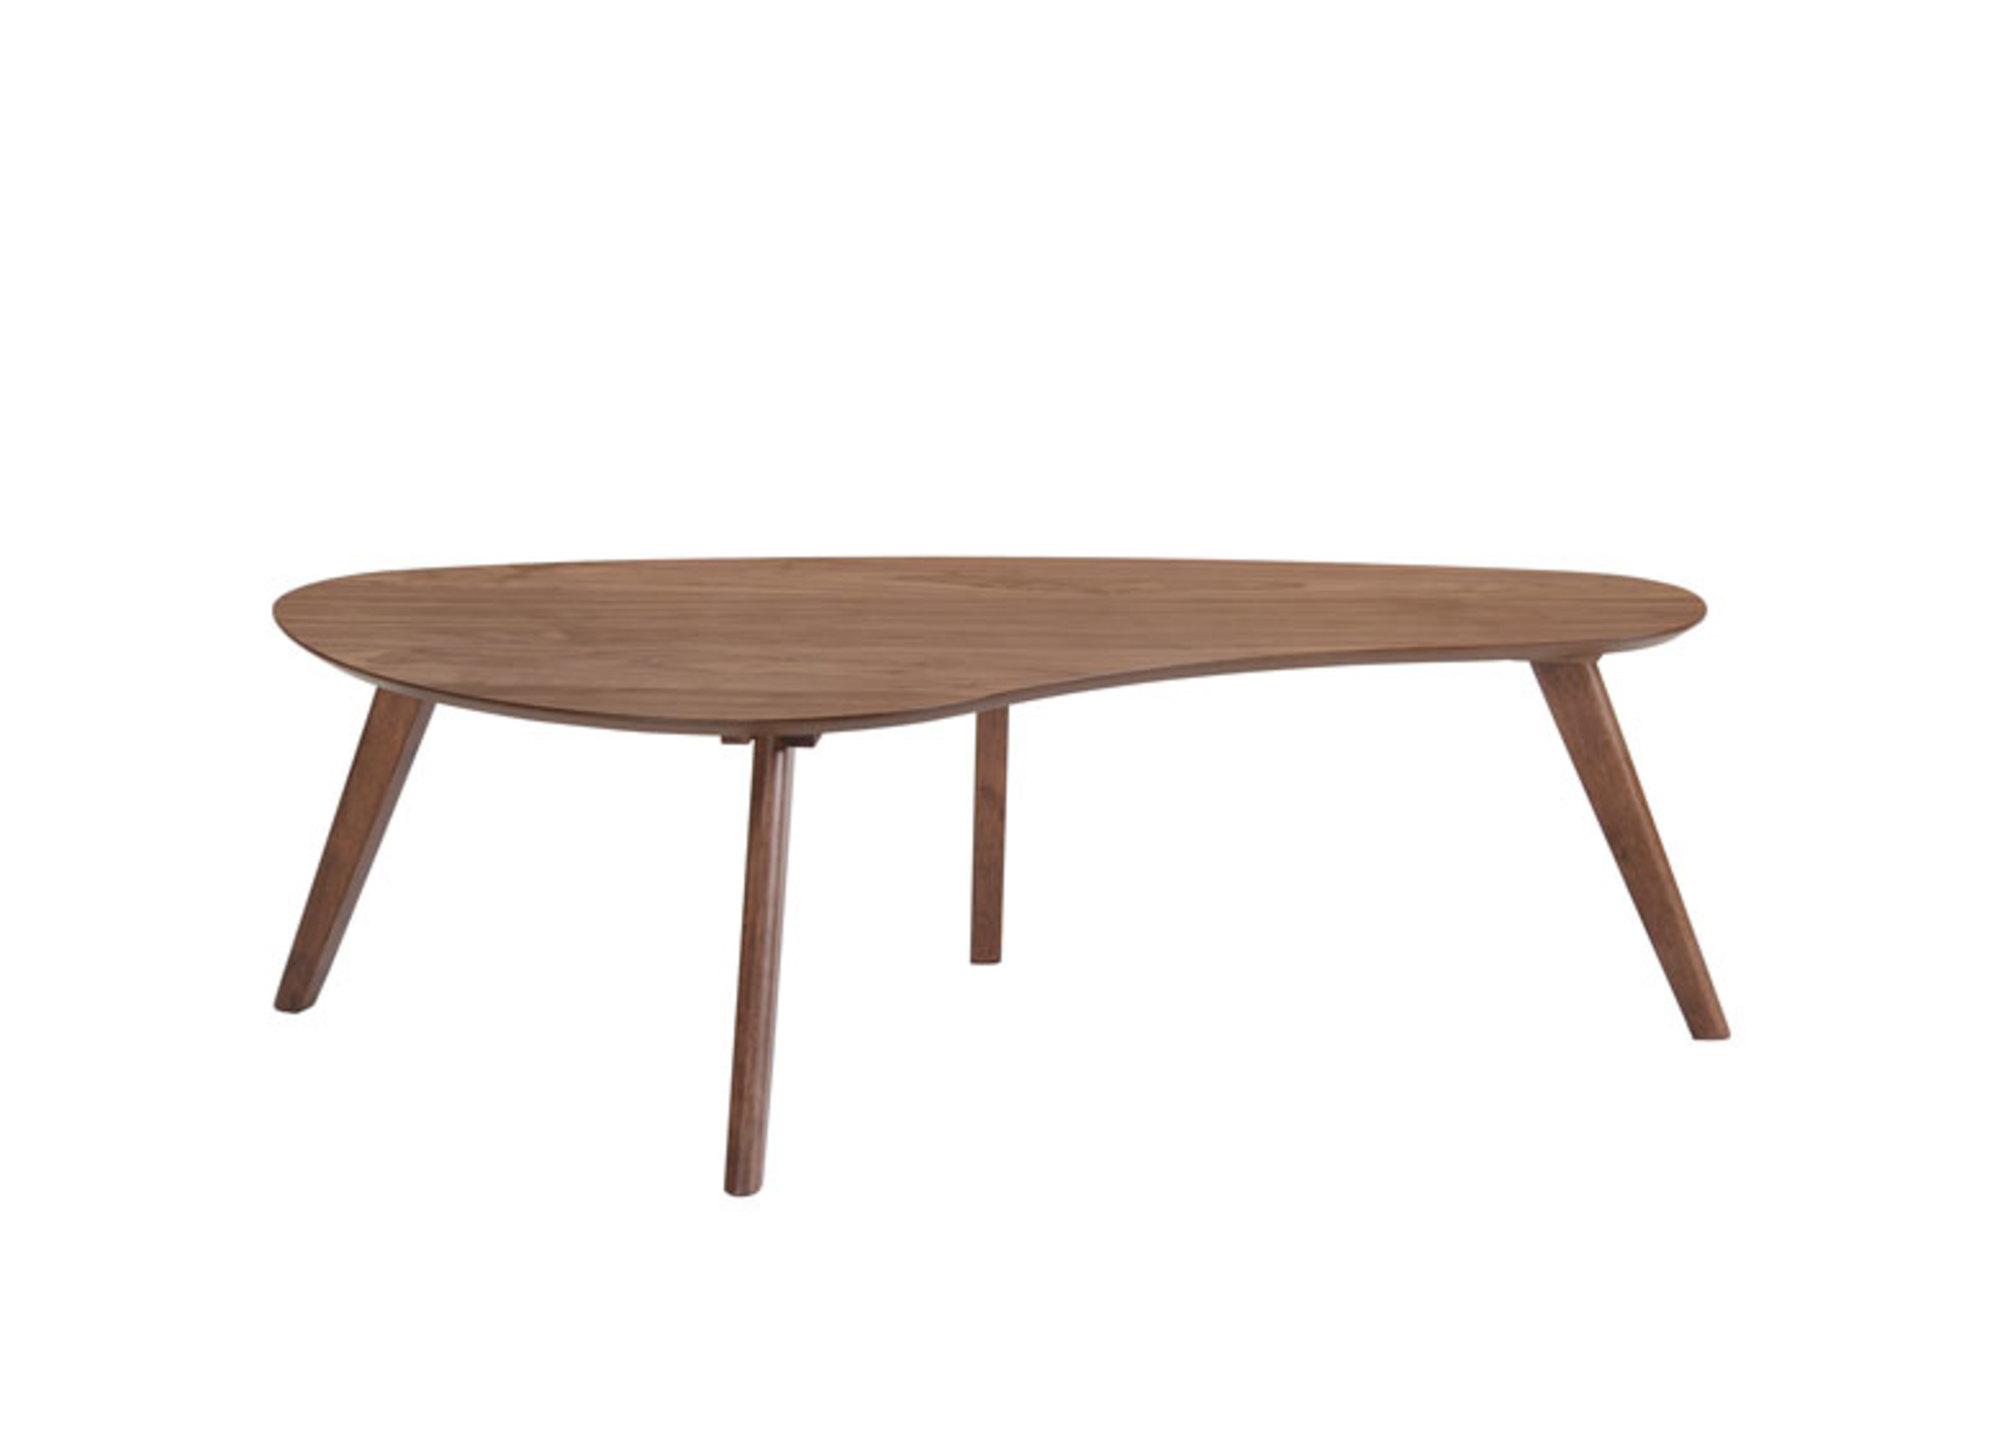 Emerald Home Simplicity Cocktail Table Walnut T550-0 by Emerald Home Furnishings, LLC